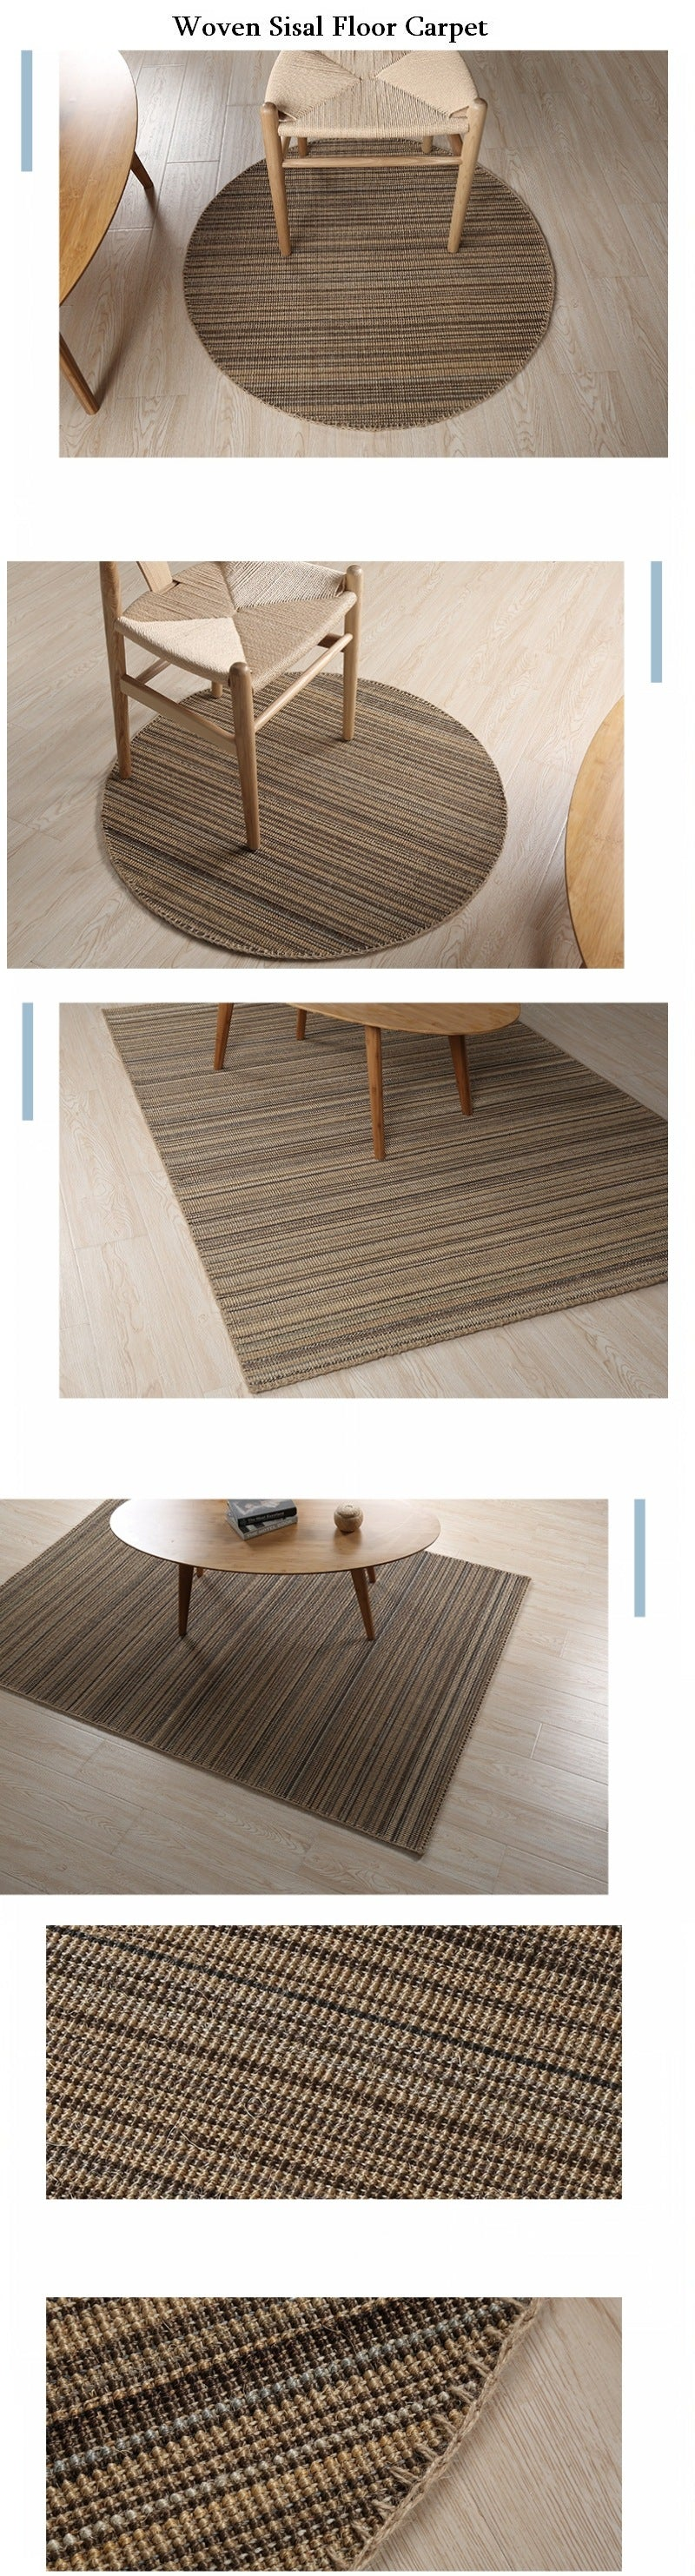 Casual Natural Fiber Natural Rustic Floor Carpet and Rugs, Sisal Rustic Woven Floor Carpet